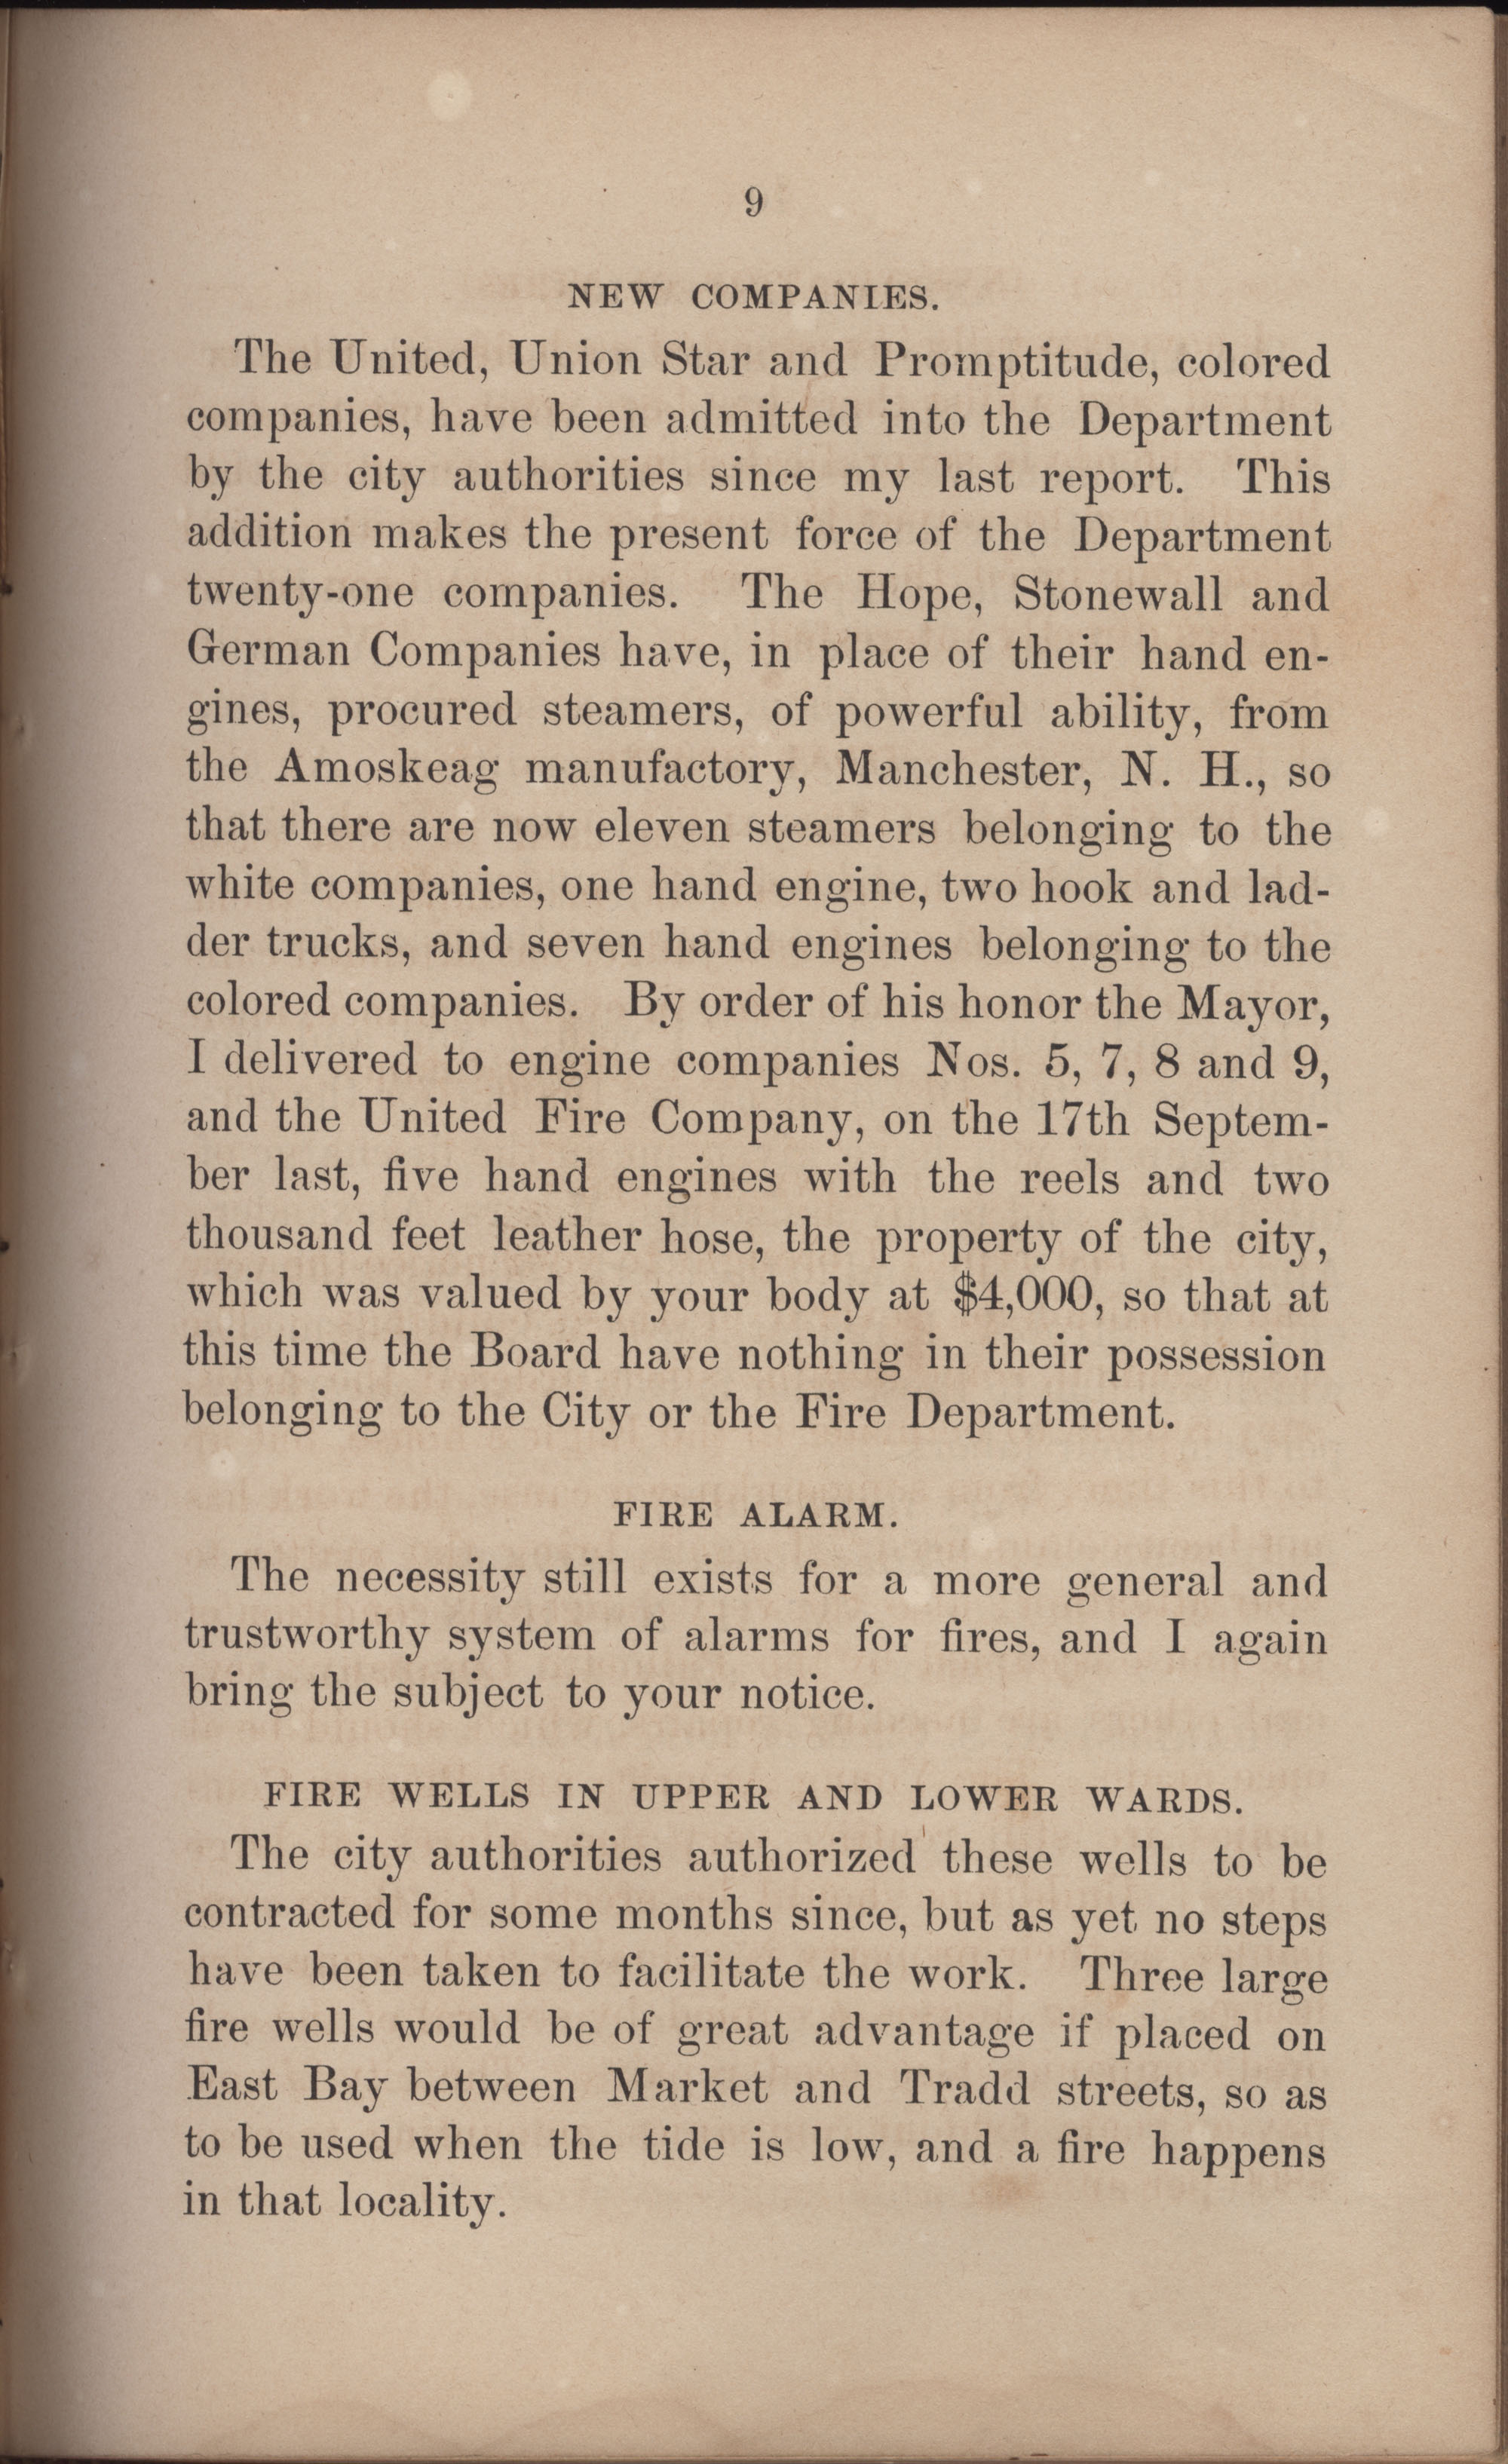 Annual Report of the Chief of the Fire Department of the City of Charleston, page 300